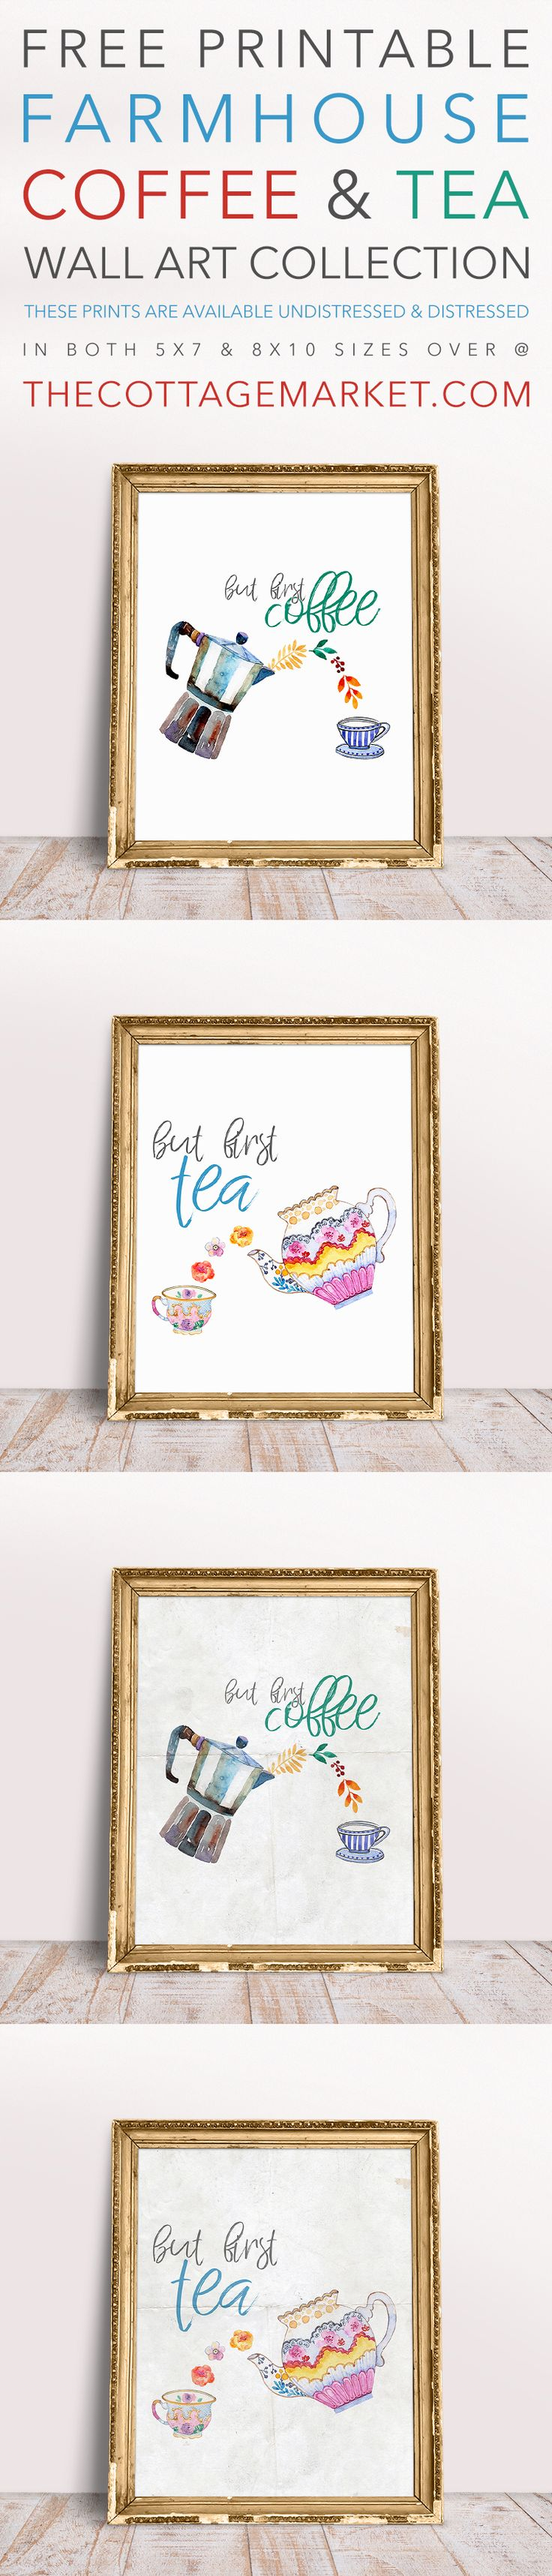 Guess what today is???  It is Free Printable Friday and today we have wonderful collection of wall art for you!  This Free Printable Coffee and Tea Wall Art Collection will make an amazing addition to your home decor! Available un-distressed and distressed (for that extra farmhouse touch)! You will find these in 2 sizes 8X10 …